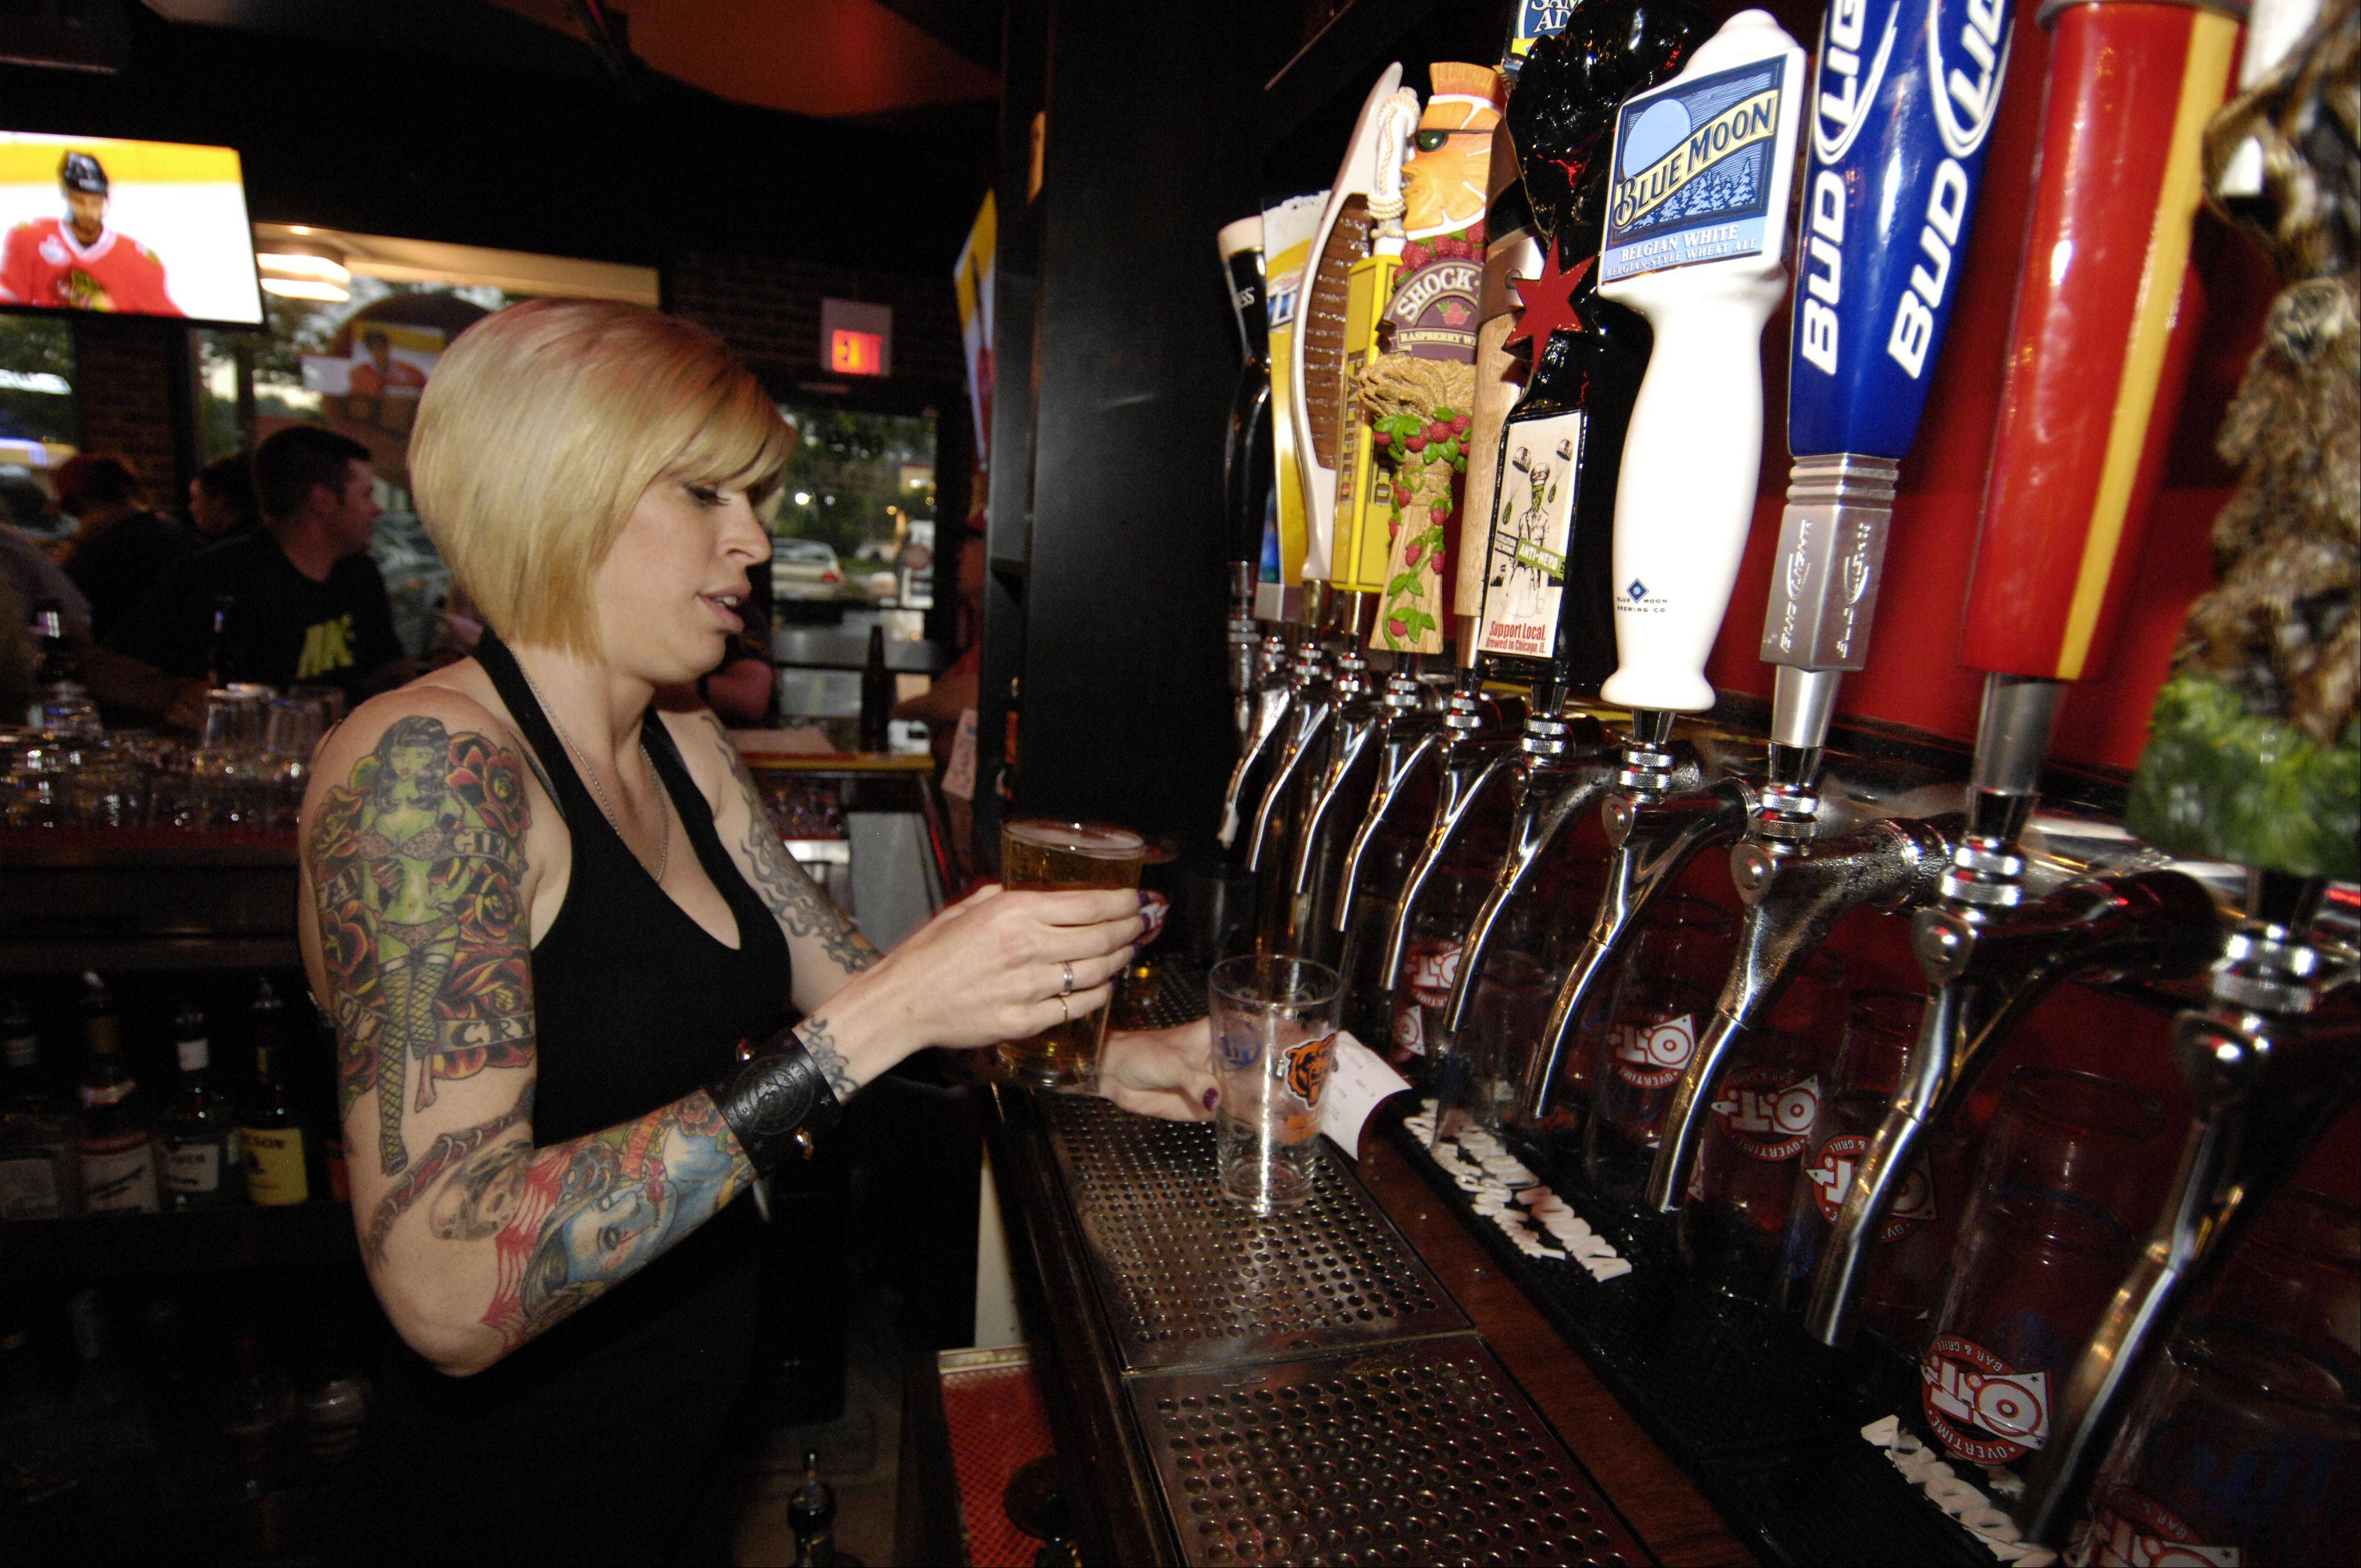 Miska Pifke pours beer at Overtime Bar & Grill in Lombard.